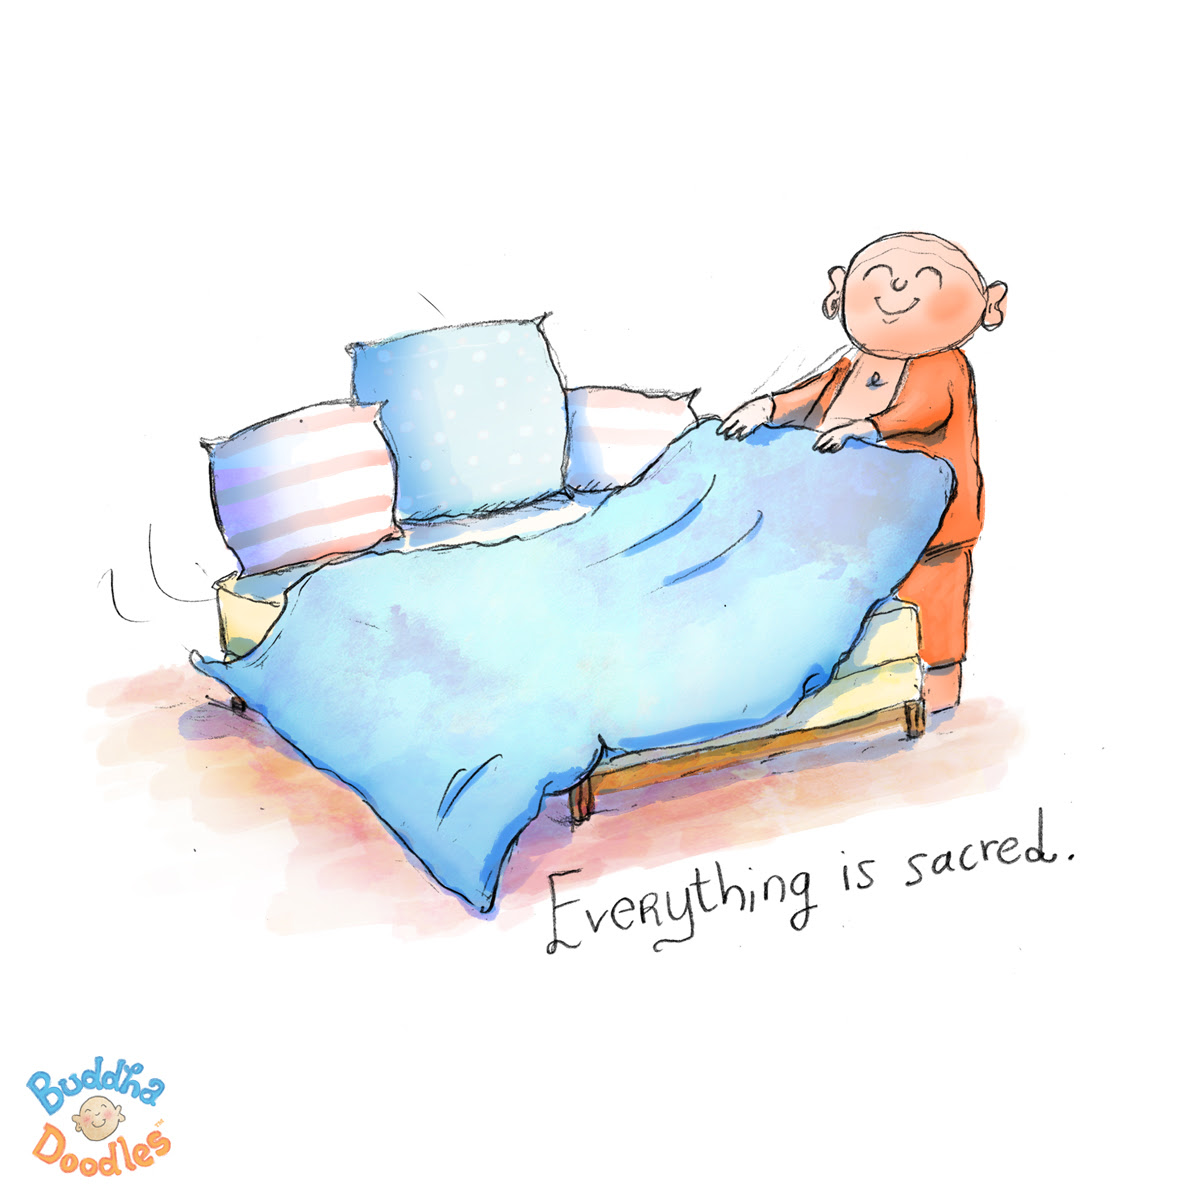 today's buddha doodle - why you should make your bed | huffpost